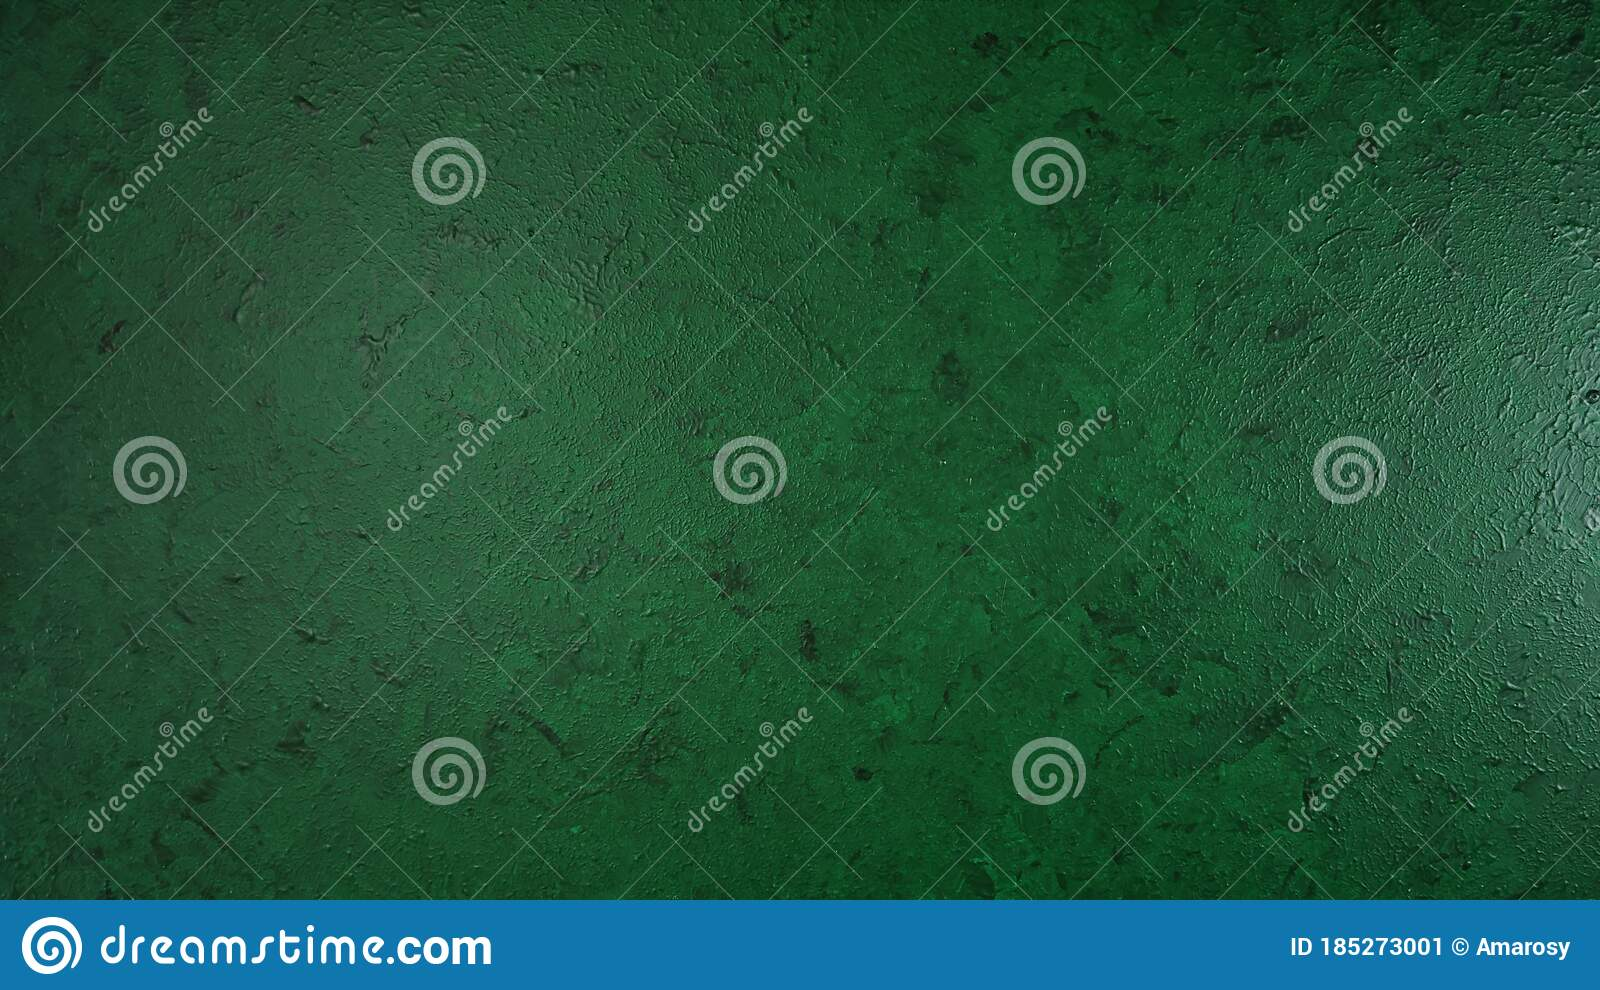 Dark Green Aesthetic Textured Marble Effect Background Stock Image Image Of Natural Copyspace 185273001